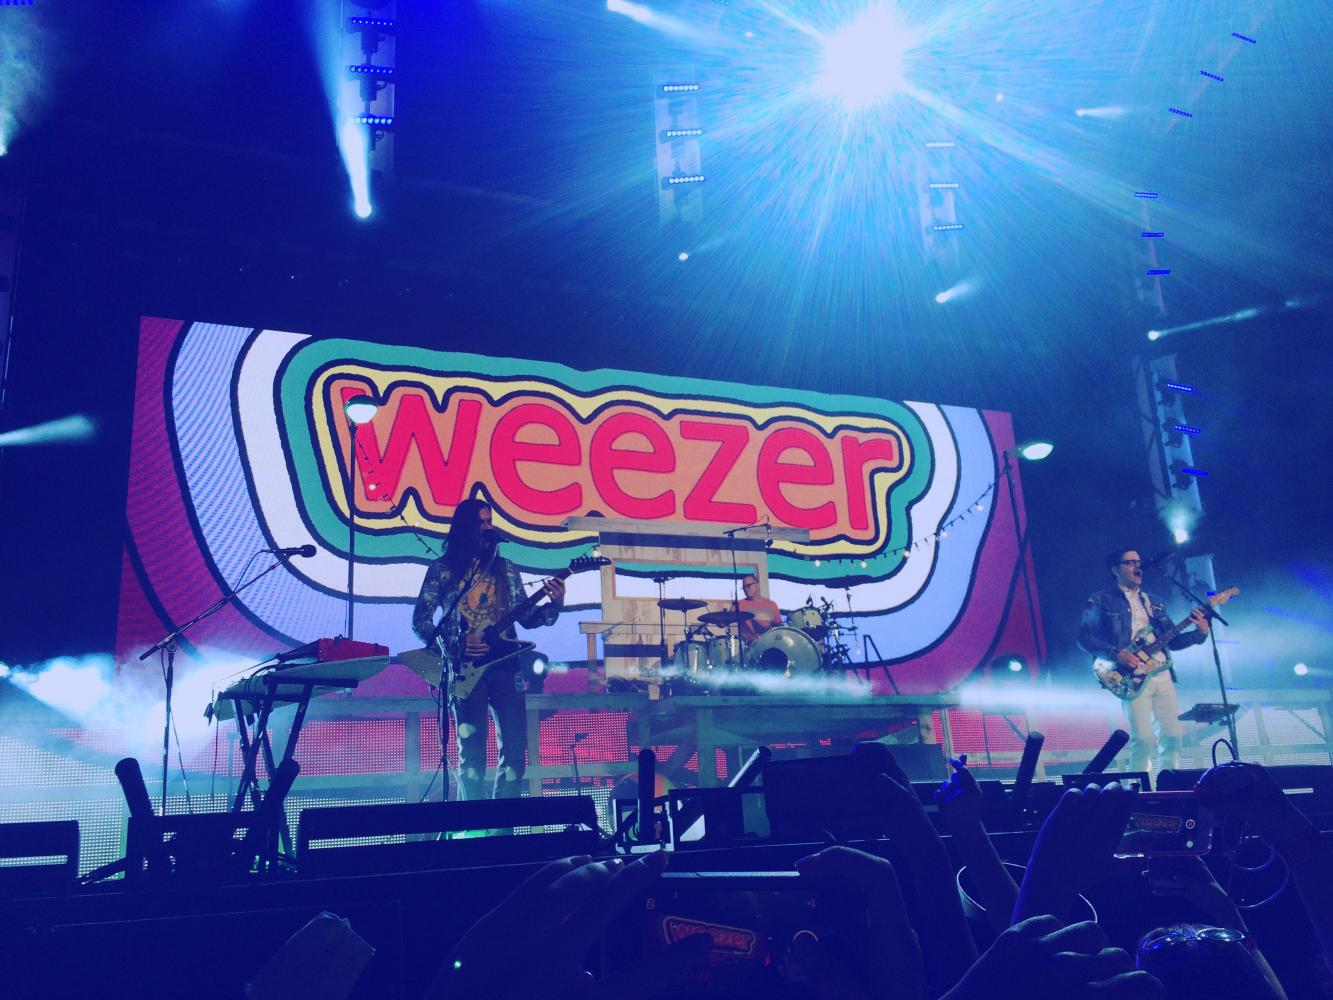 Weezer performs at Jiffy Lube Live June 2016. Outdoor concert venues have become increasingly popular events for students to attend. Photo courtesy Celia Shapiro.